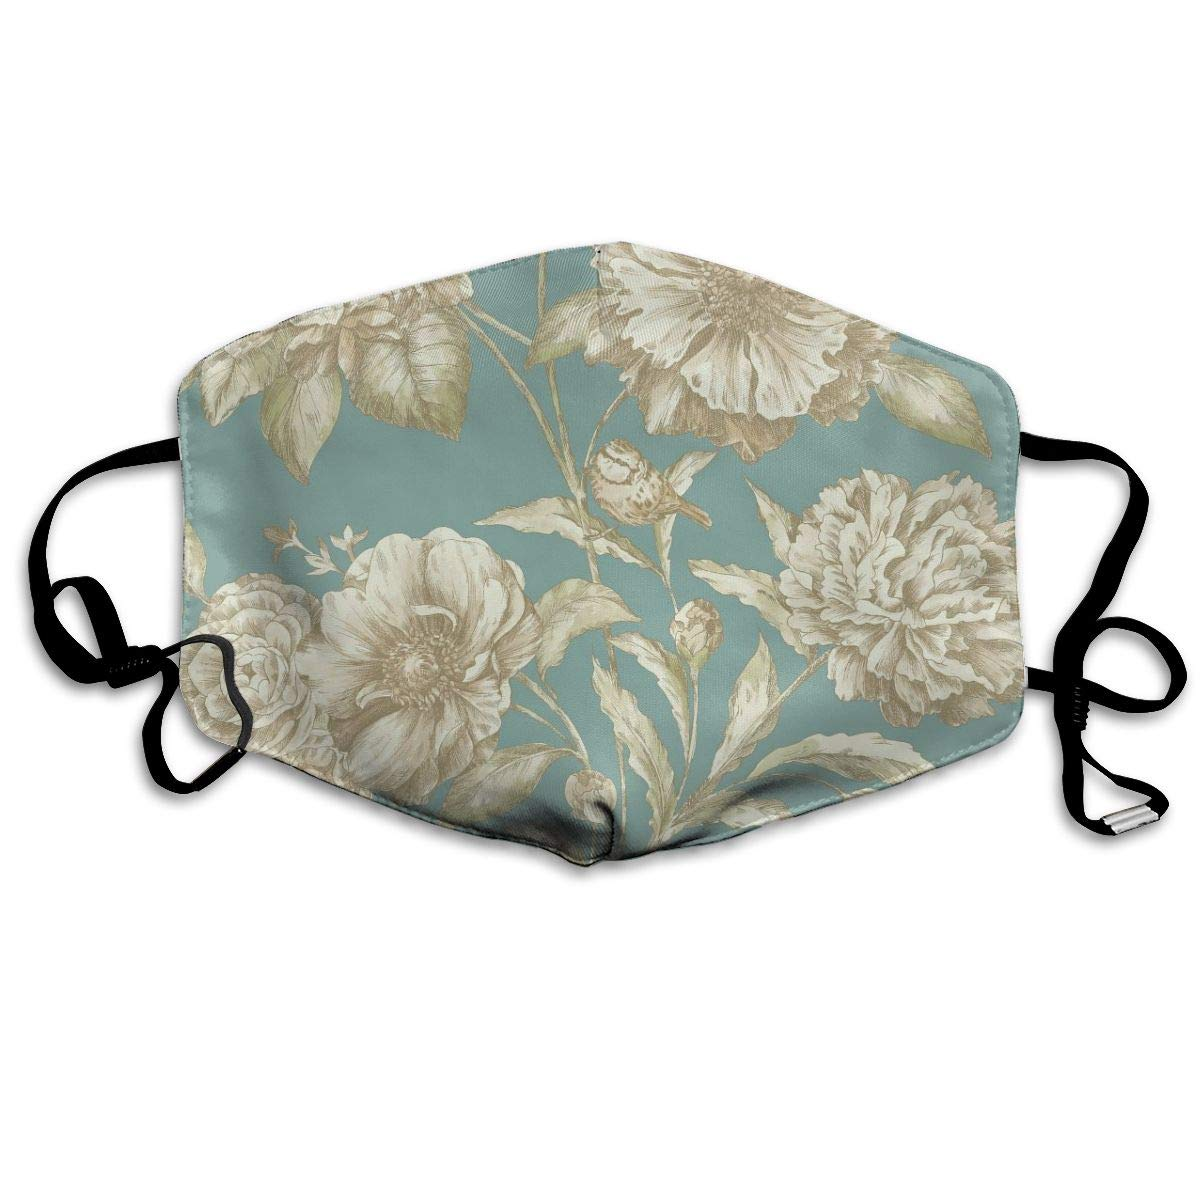 Mouth Mask for Daily Dress Up, Flower Floral Anti-dust Mouth-Muffle, Washable Reusable Holiday Half Face Masks for Mens and